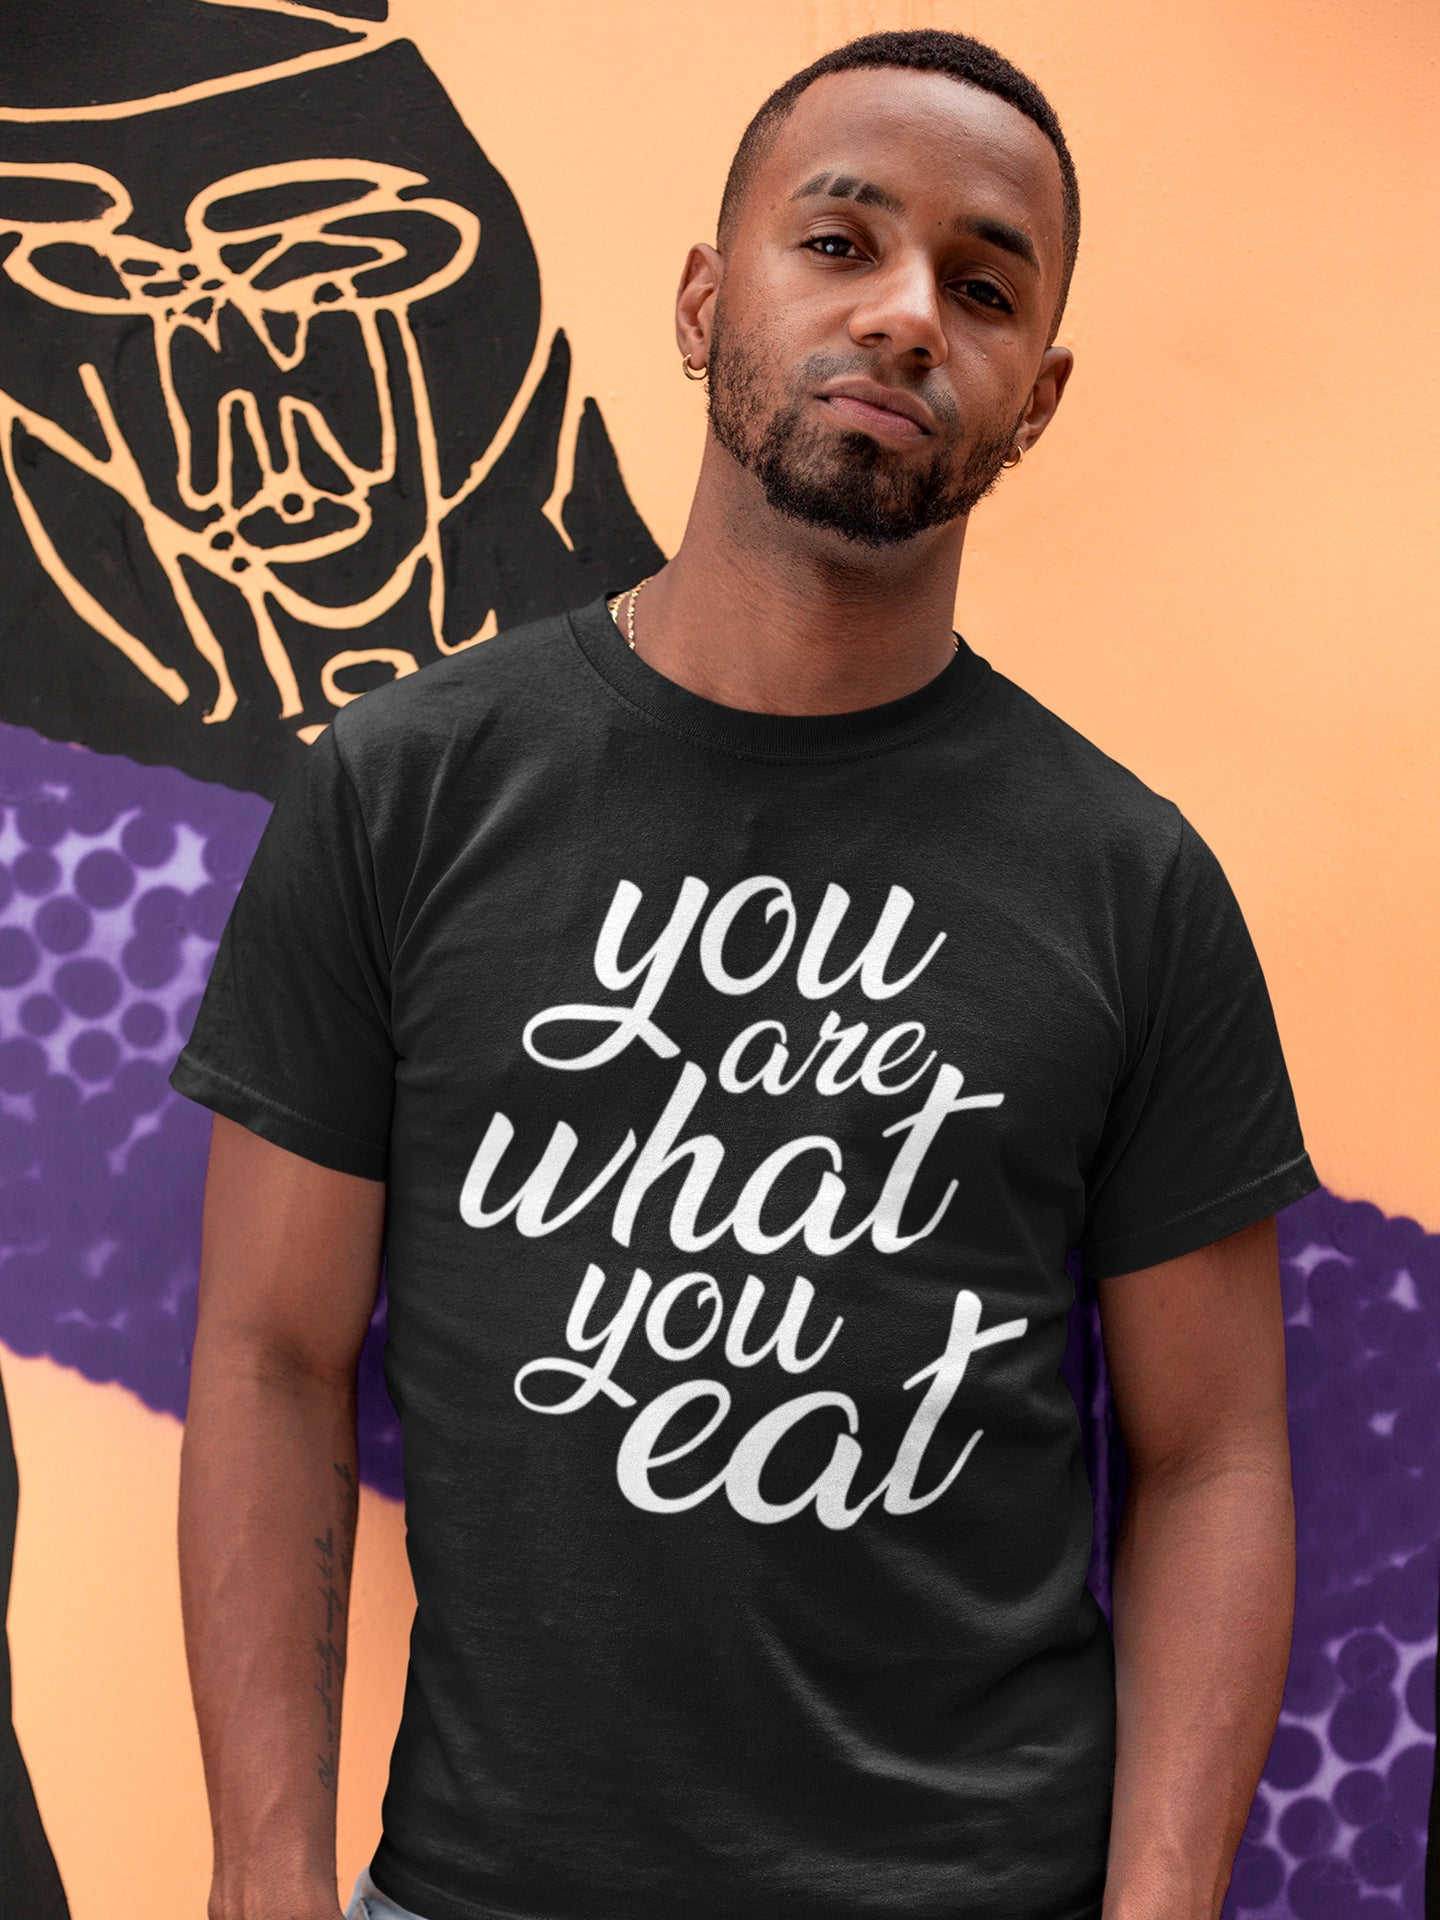 You are what you eat - Man's vegan t-shirt